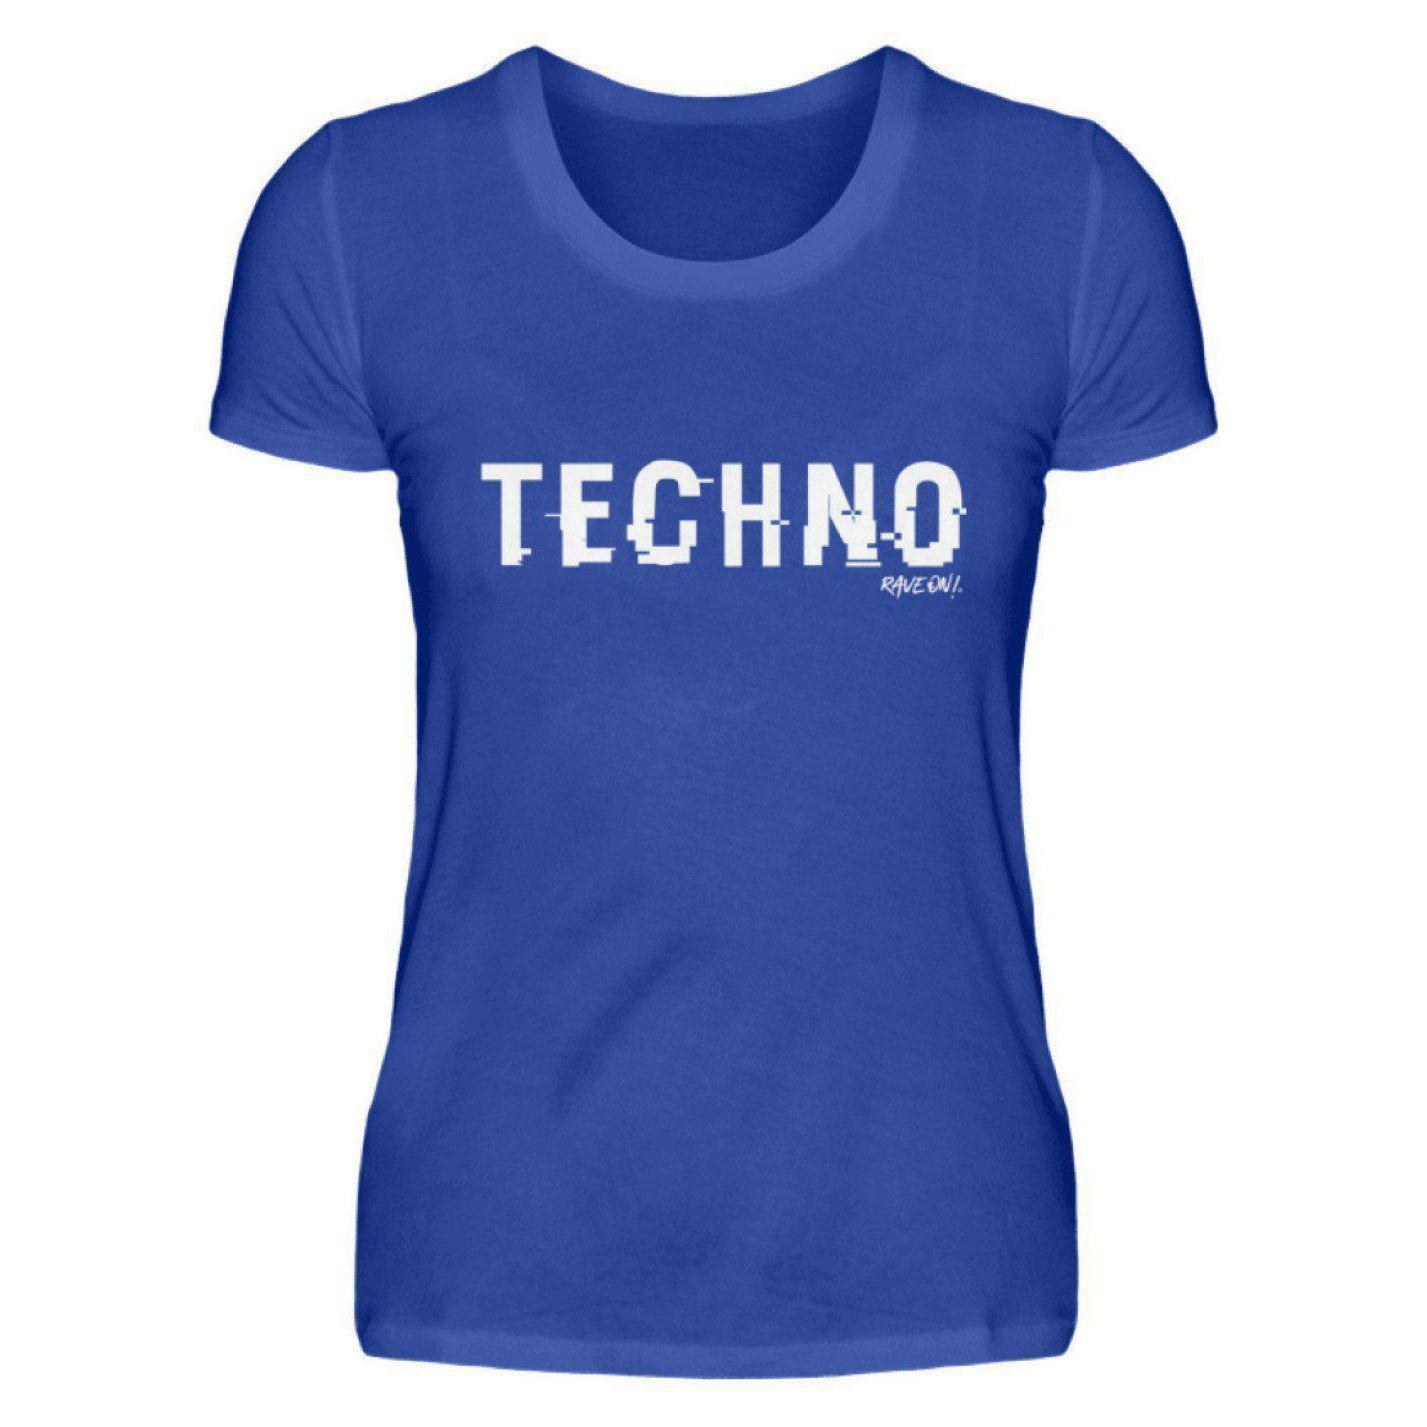 TECHNO shifted Rave On!® - Ladies Shirt Ladies Basic T-Shirt Neon Blue / S / Ladies Shirt - Rave On!® the club & techno scene shop for cool young fashion streetwear style & fashion outfits + sexy festival 420 stuff